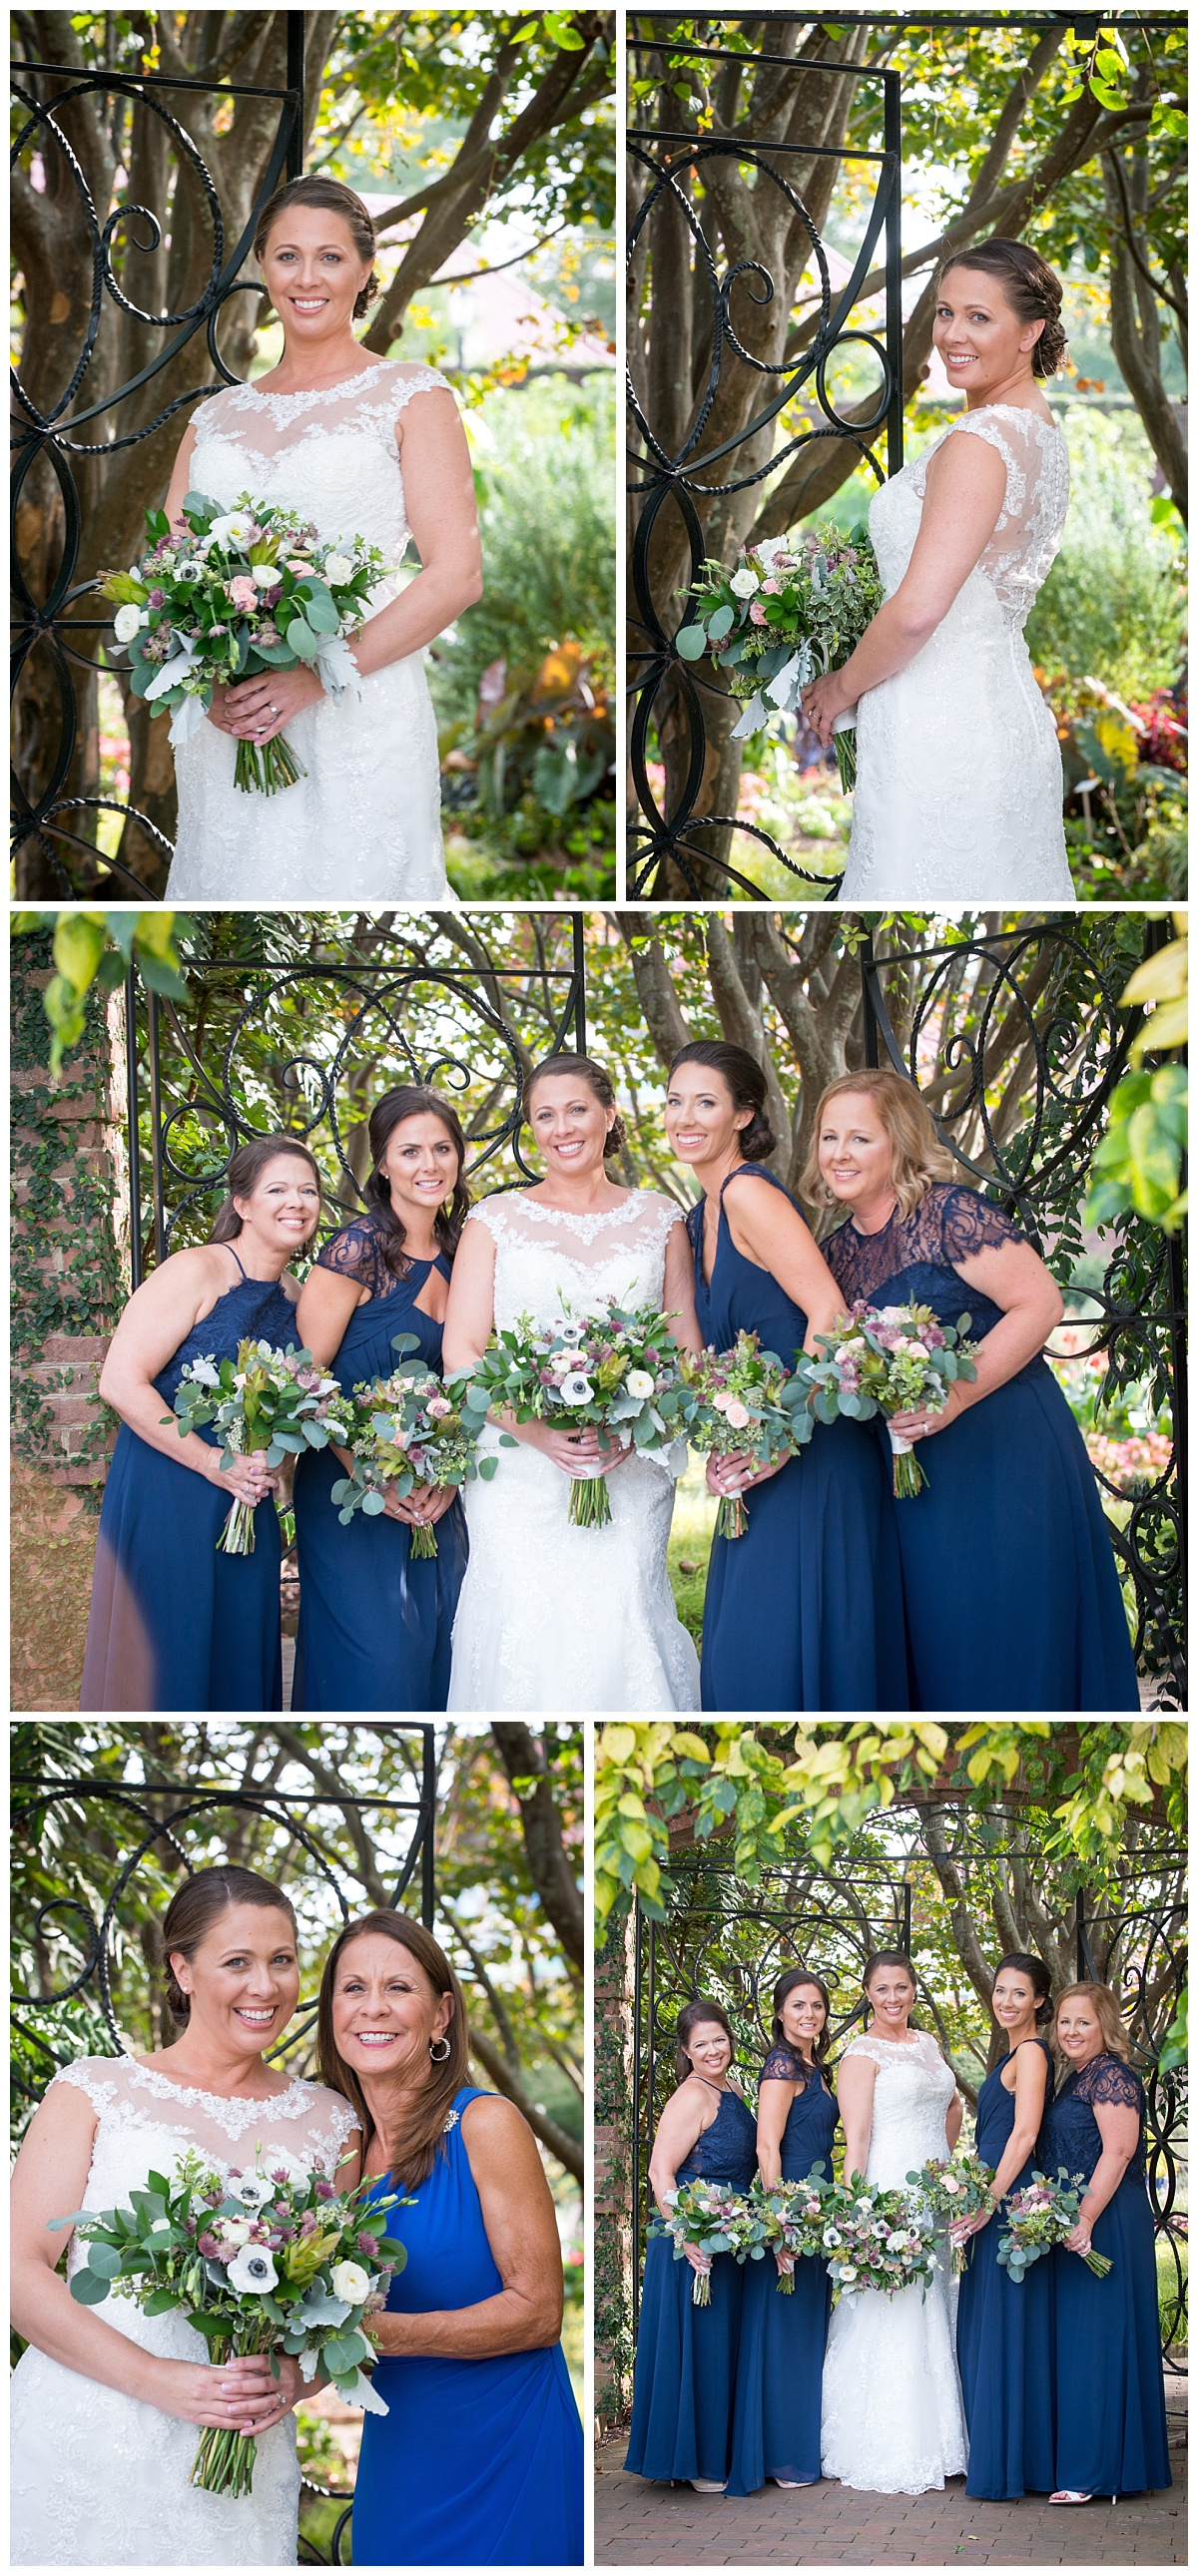 Bridesmaid in navy gowns